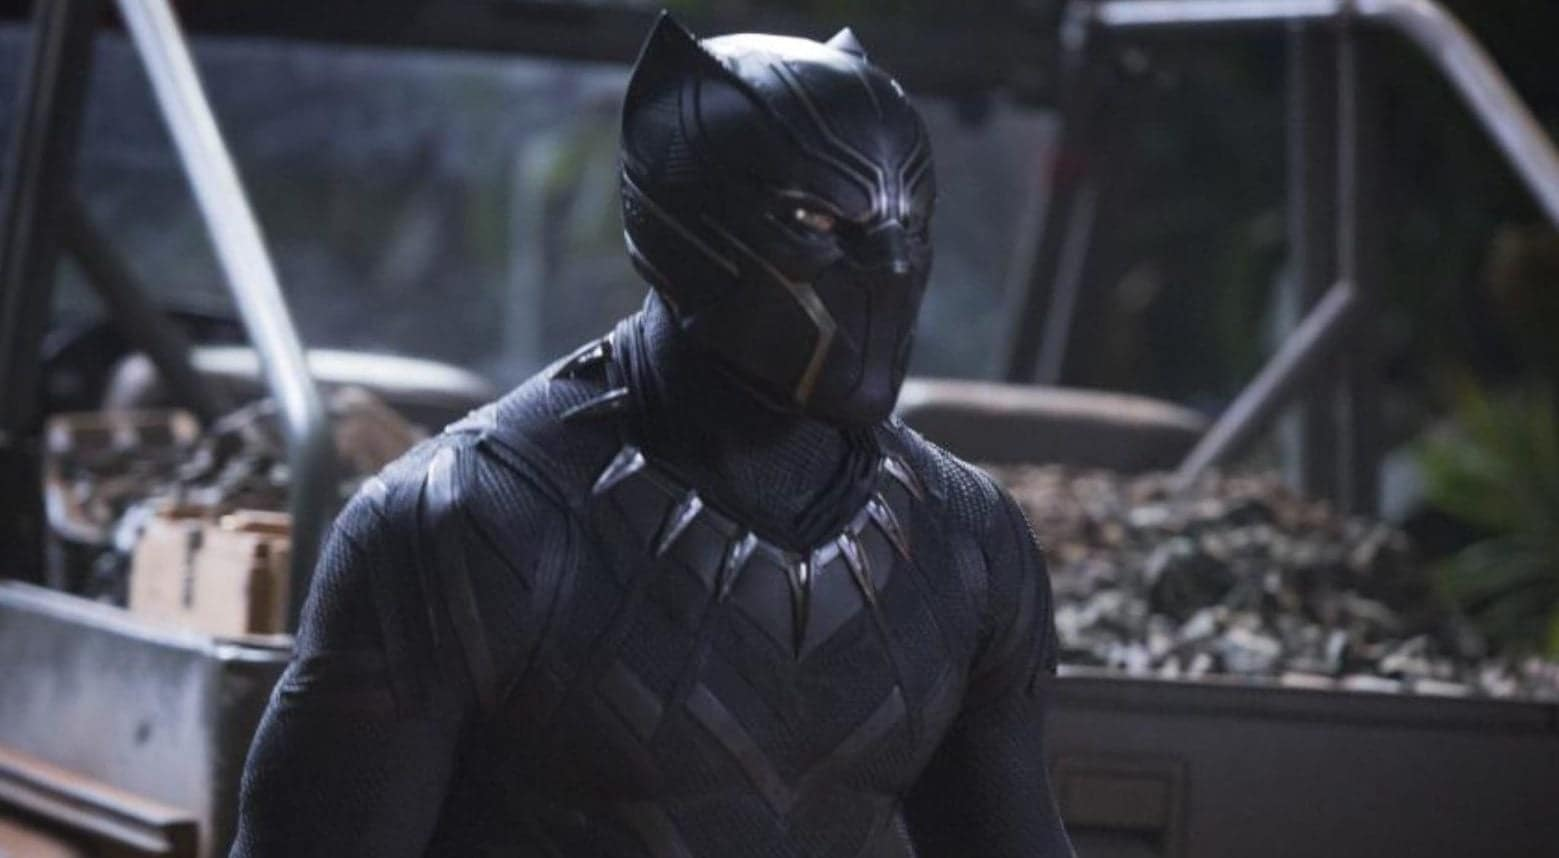 Third straight week 'Black Panther' holds top box office spot